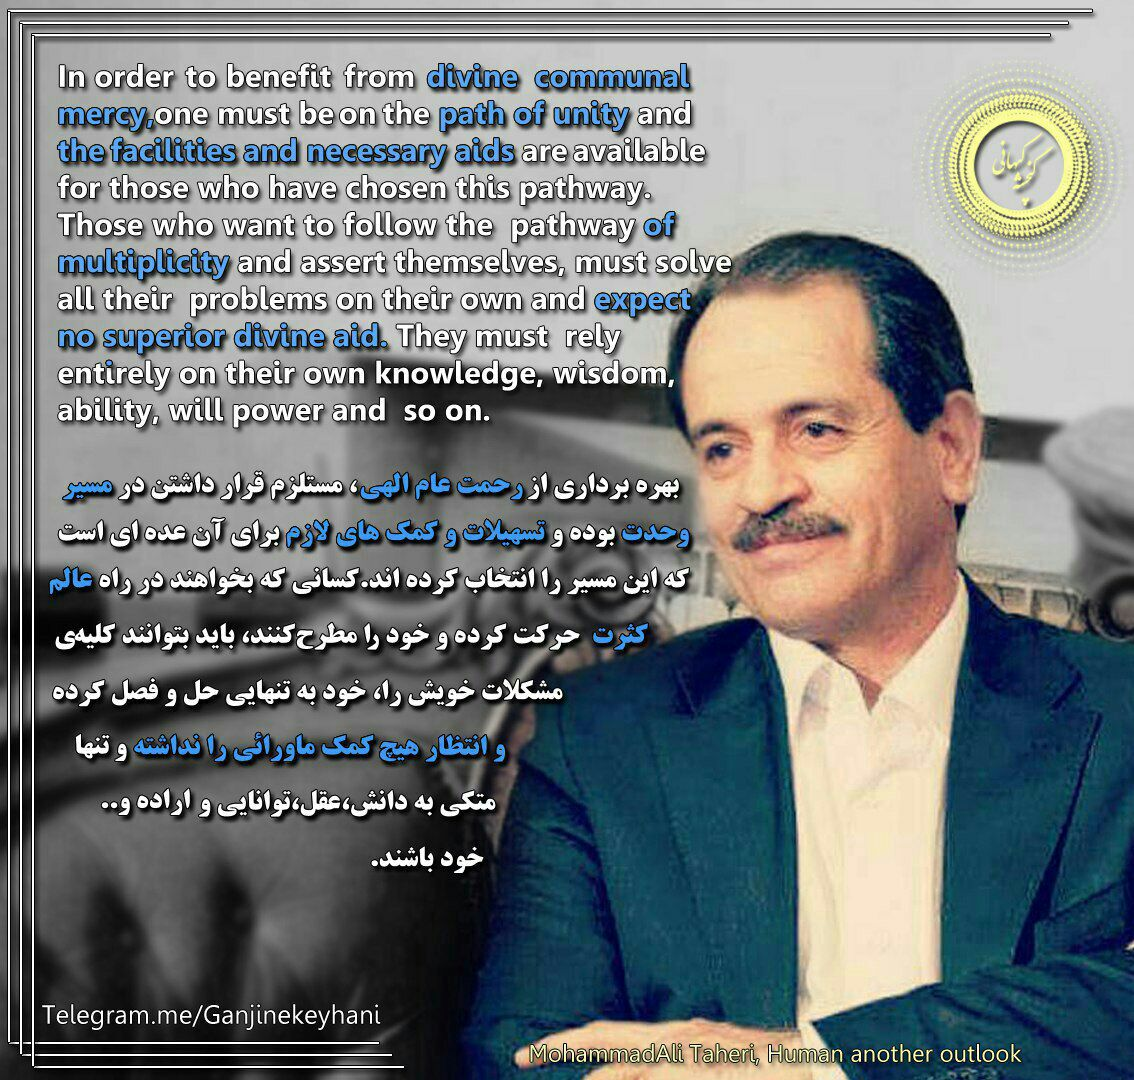 In order to benefit from divine communal mercy one mustbe on the path of unity and the facilities and necessary aids are available for Those who have chosen this pathway @JunckerEU @donaldtusk @FedericaMog @HelgaSchmid_EU @MarietjeSchaake @sigmargabriel  @Europarl_EN #FreeTaheri <br>http://pic.twitter.com/S5ZPmOFA73